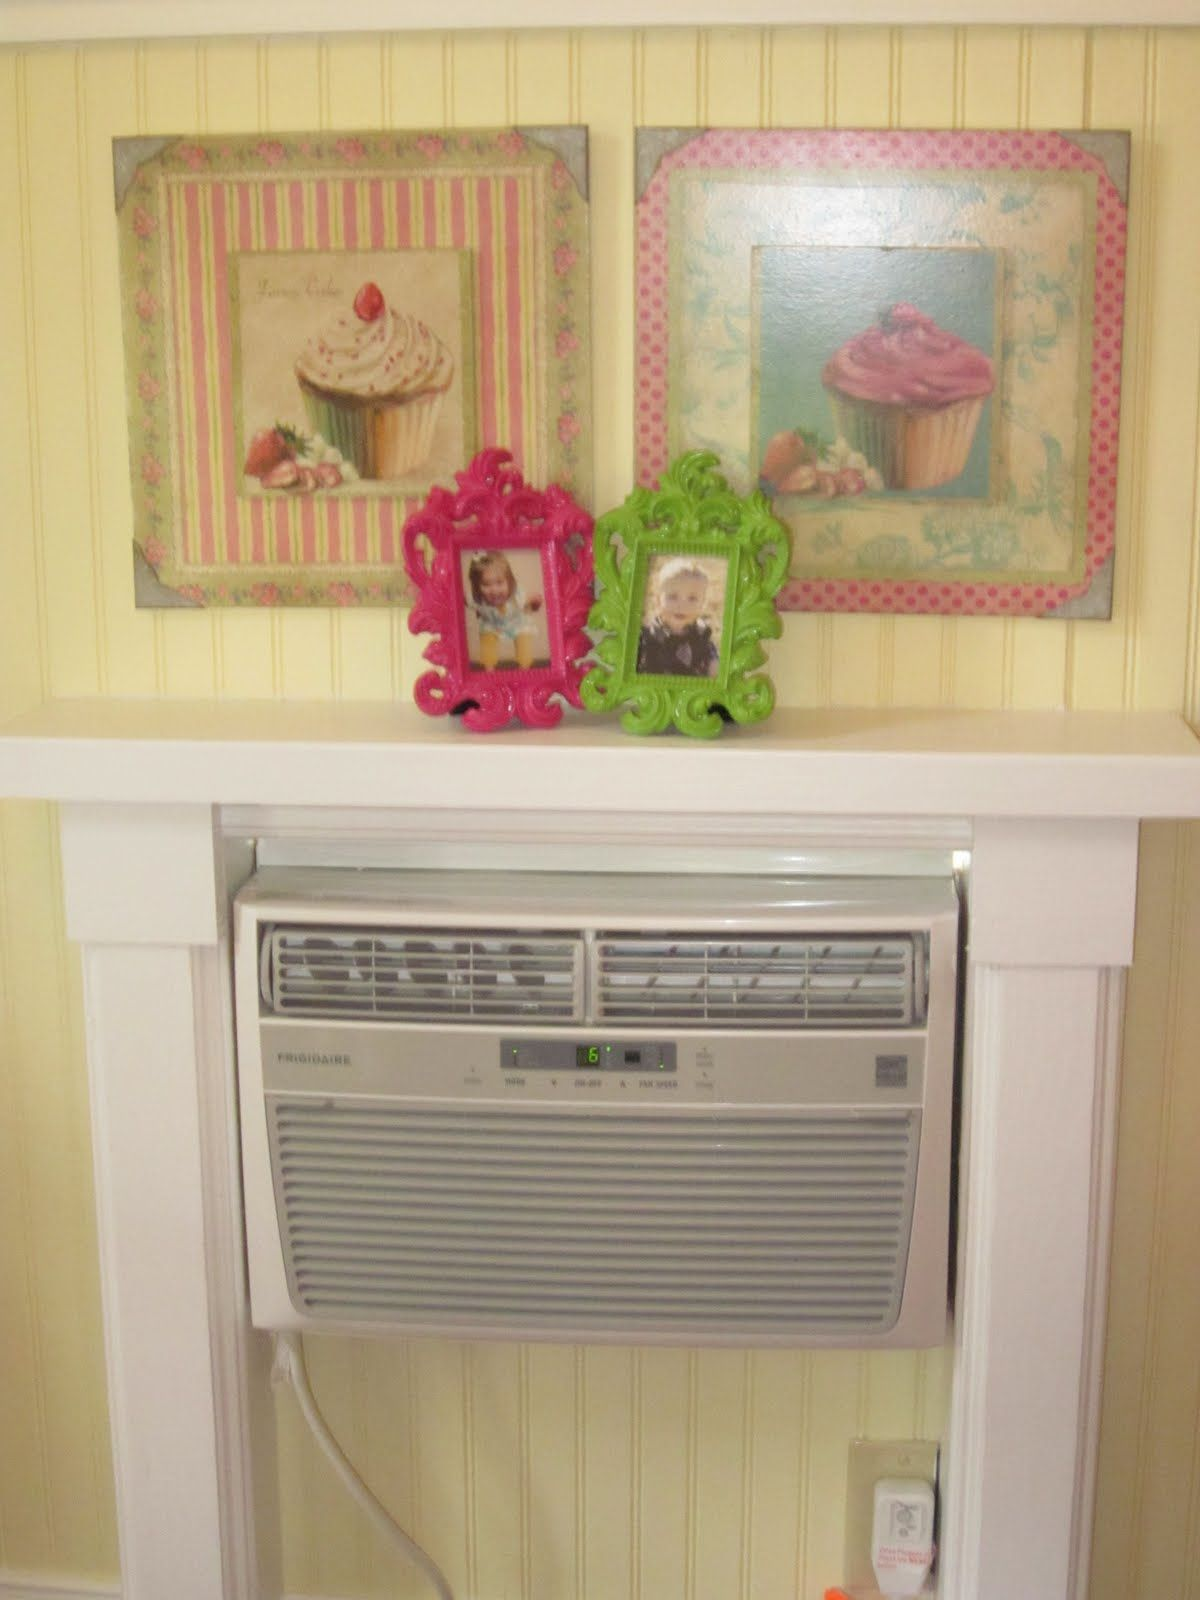 Kidkraft large pastel kitchen  Fake fire place mantle with AC unit built in  Kennedyus Outdoor